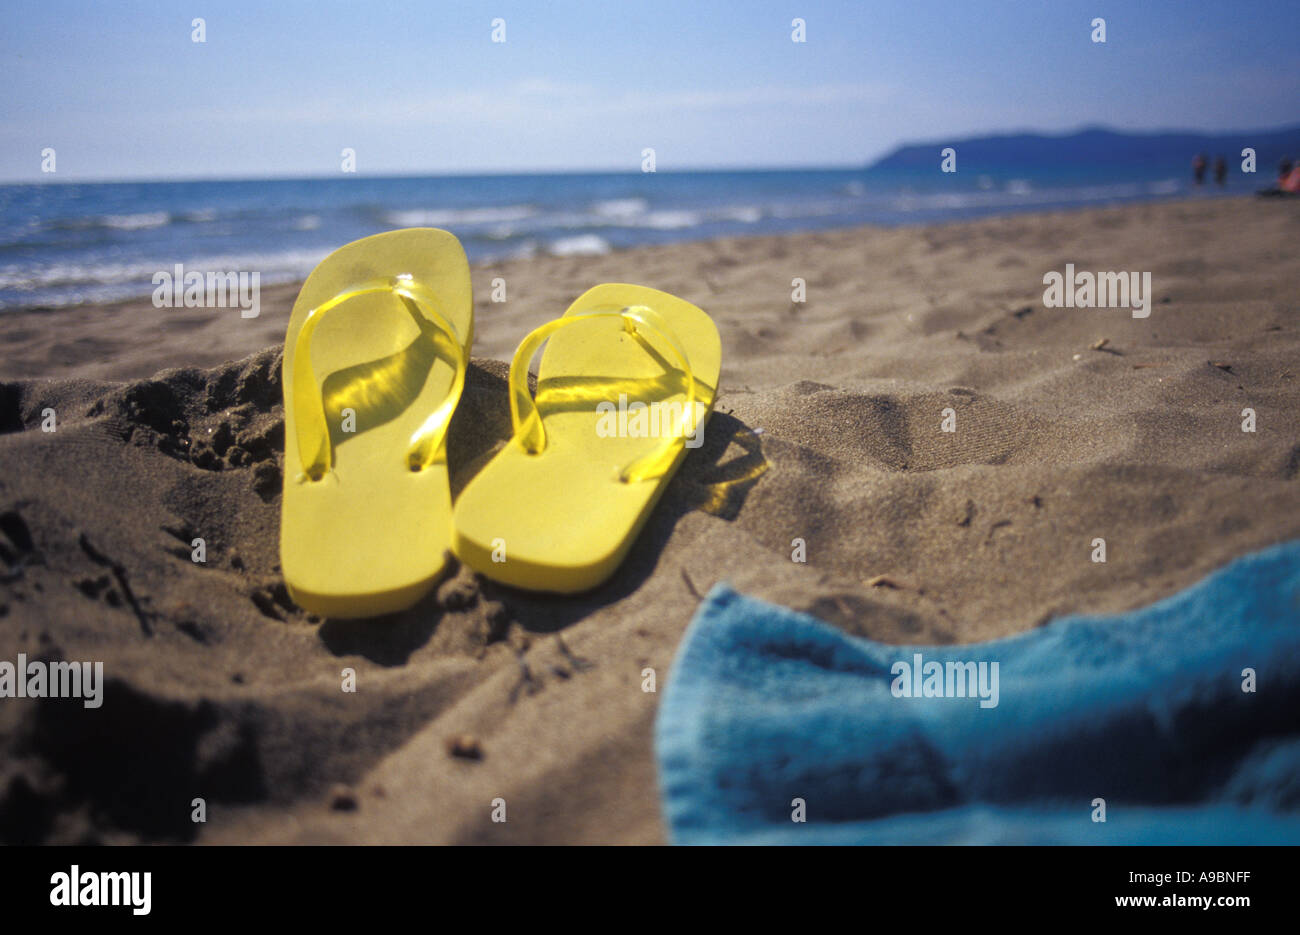 Flip flops on sand at beach - Stock Image